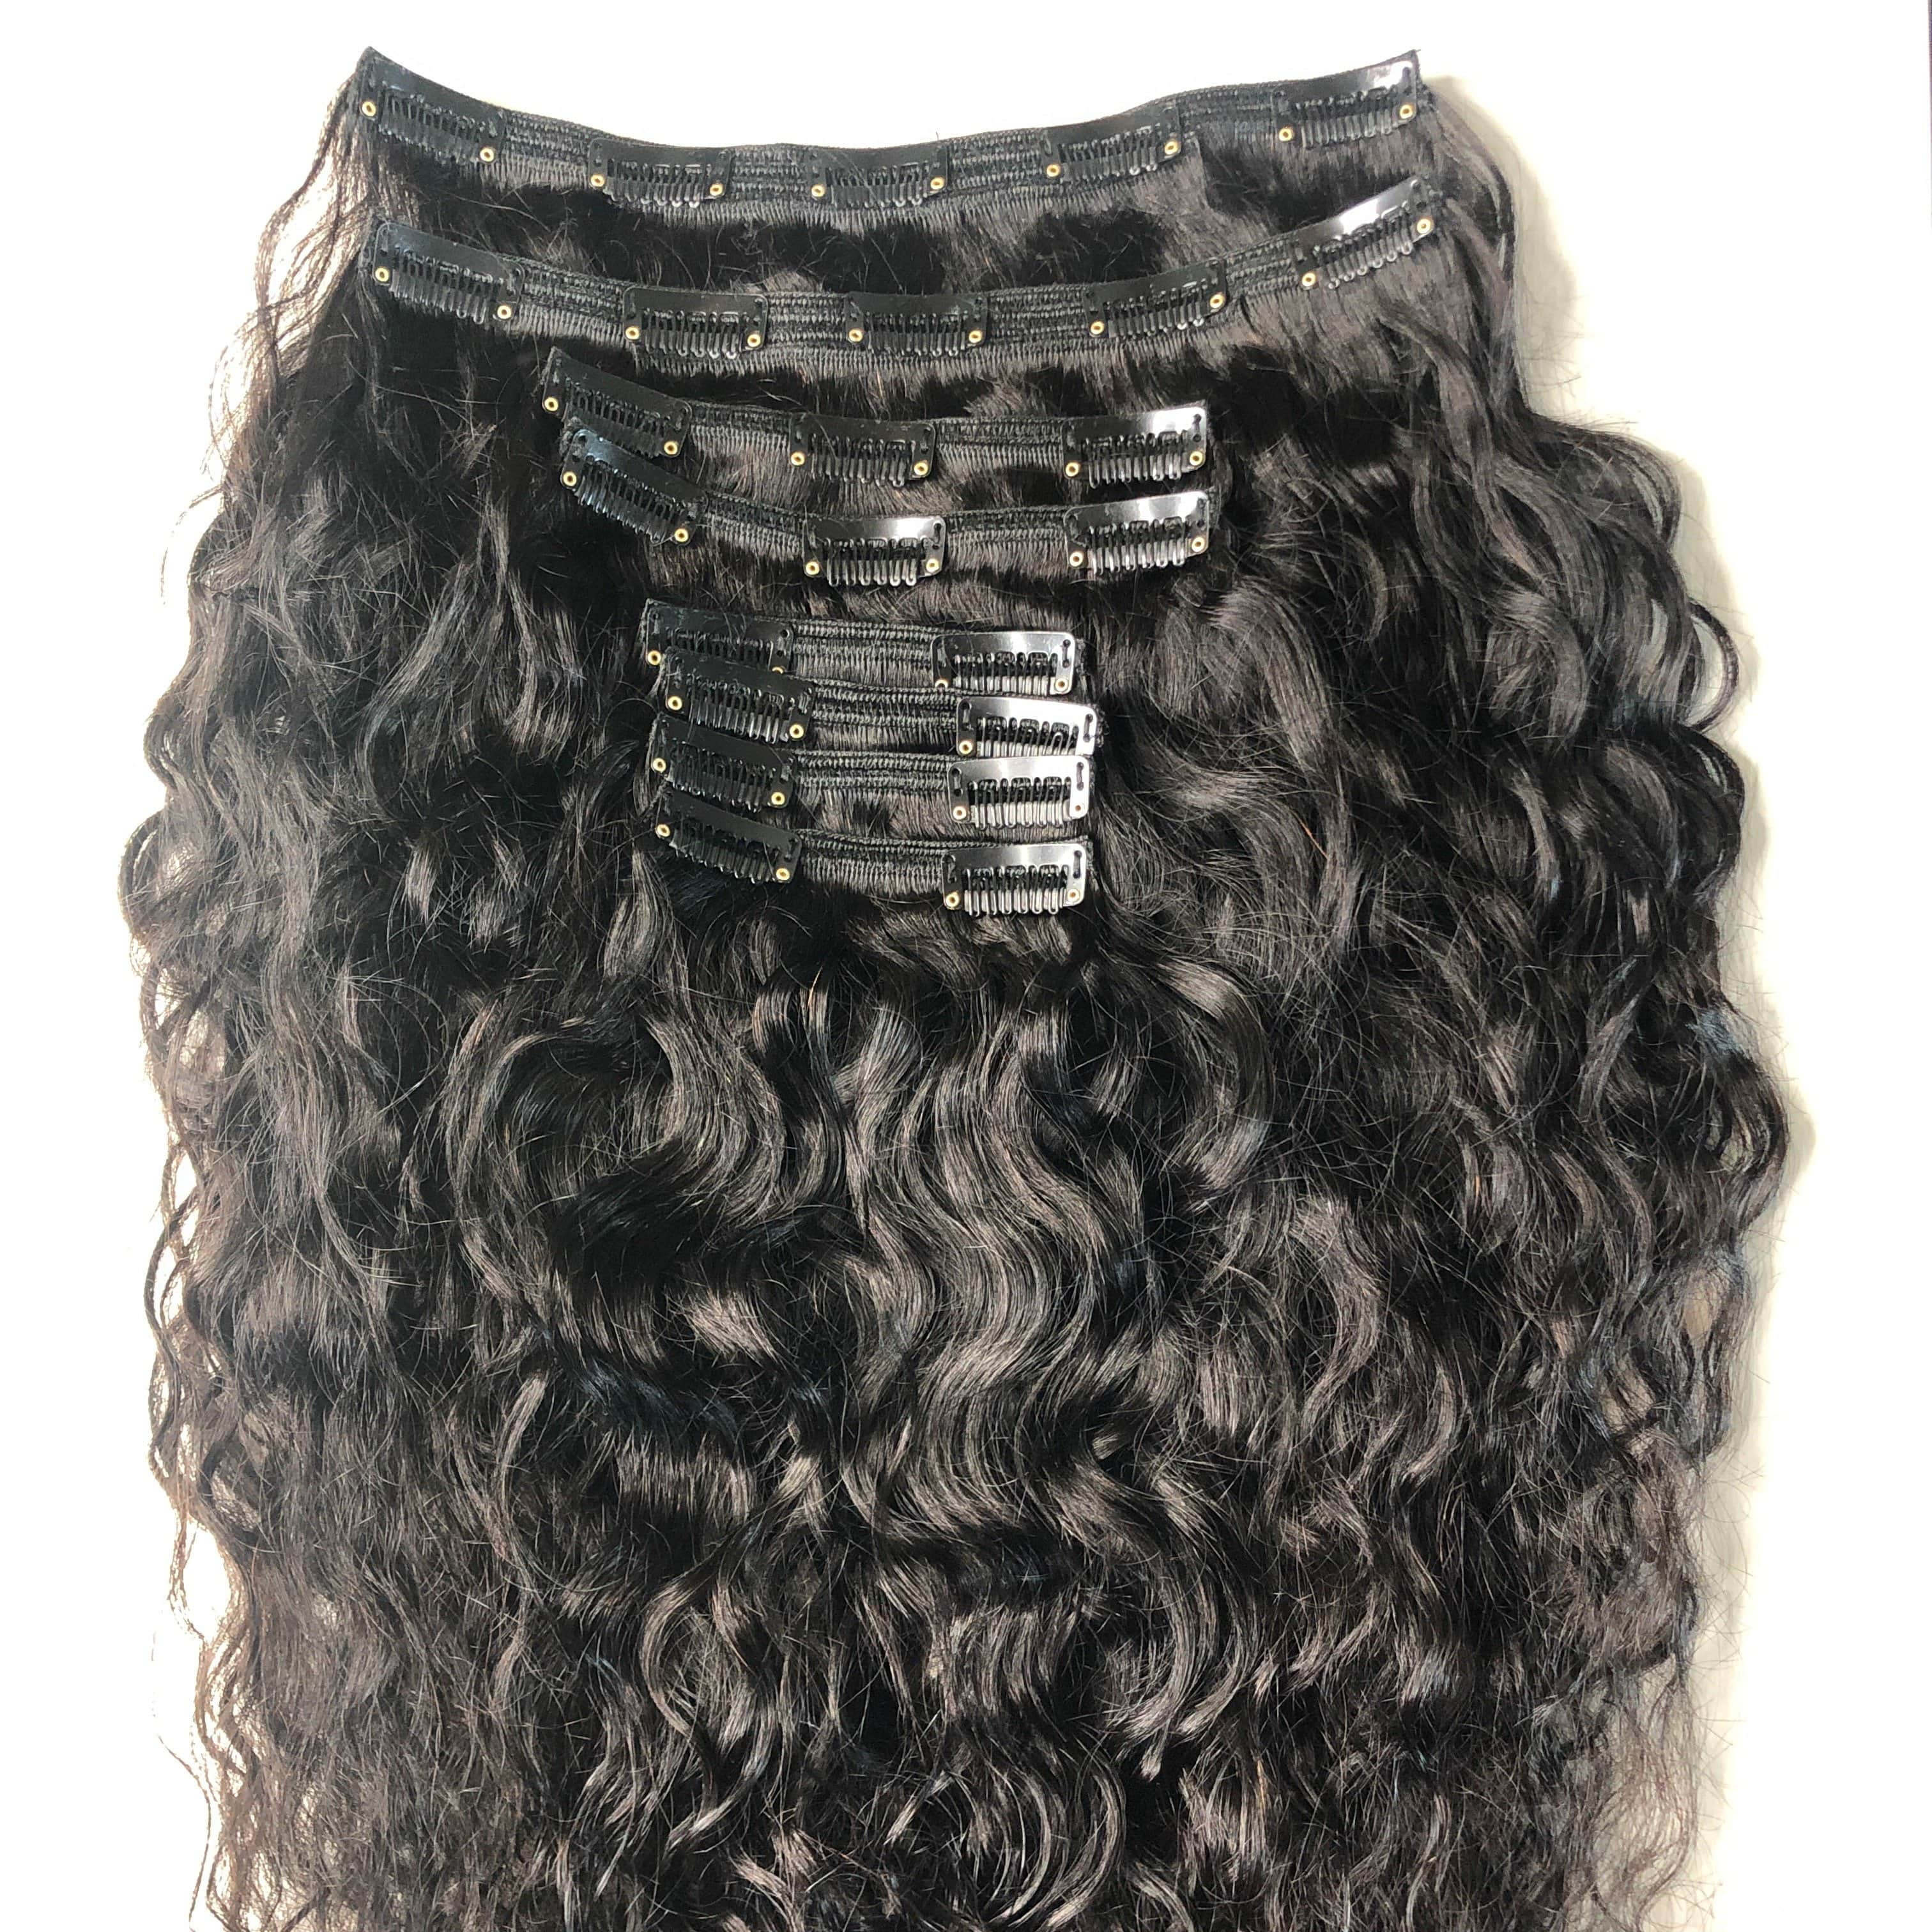 Beach Wavy LUX 200g Clip-In Extensions Set